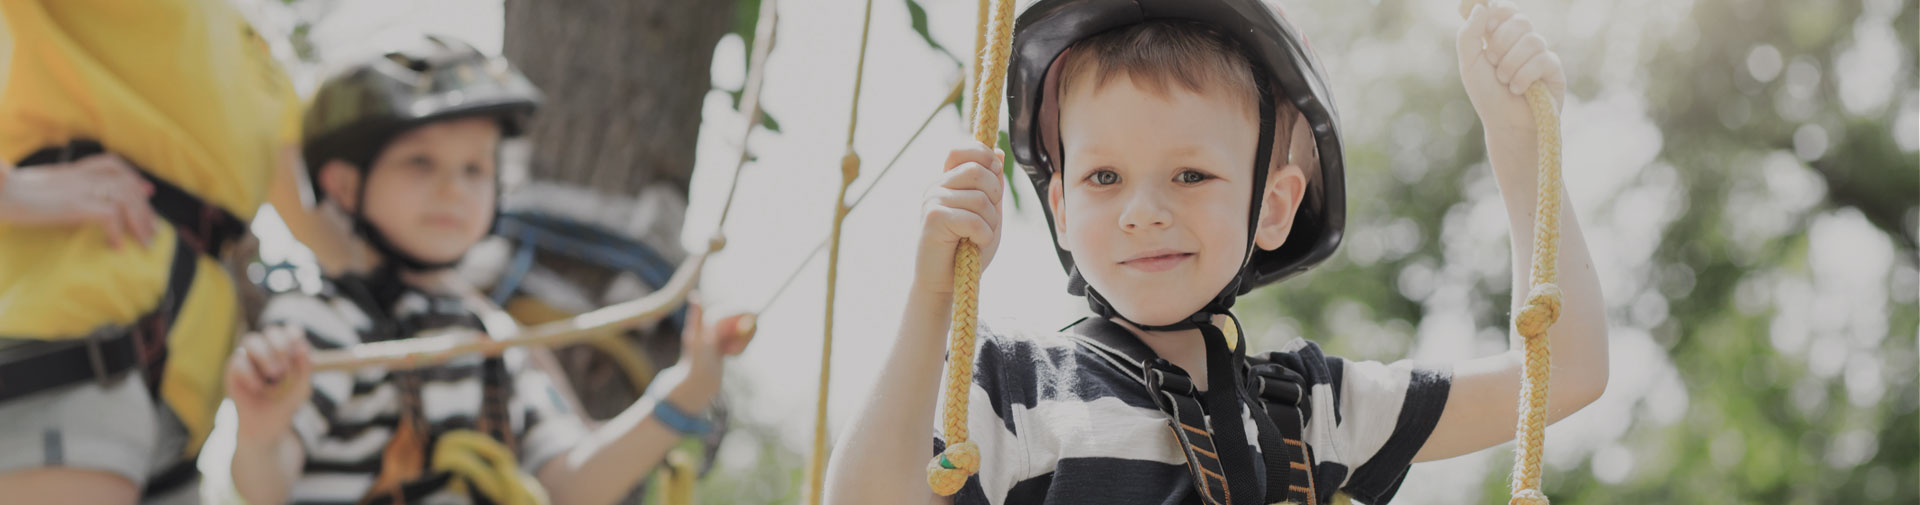 Camp Kydnie is a kidney camp for kids with CKD